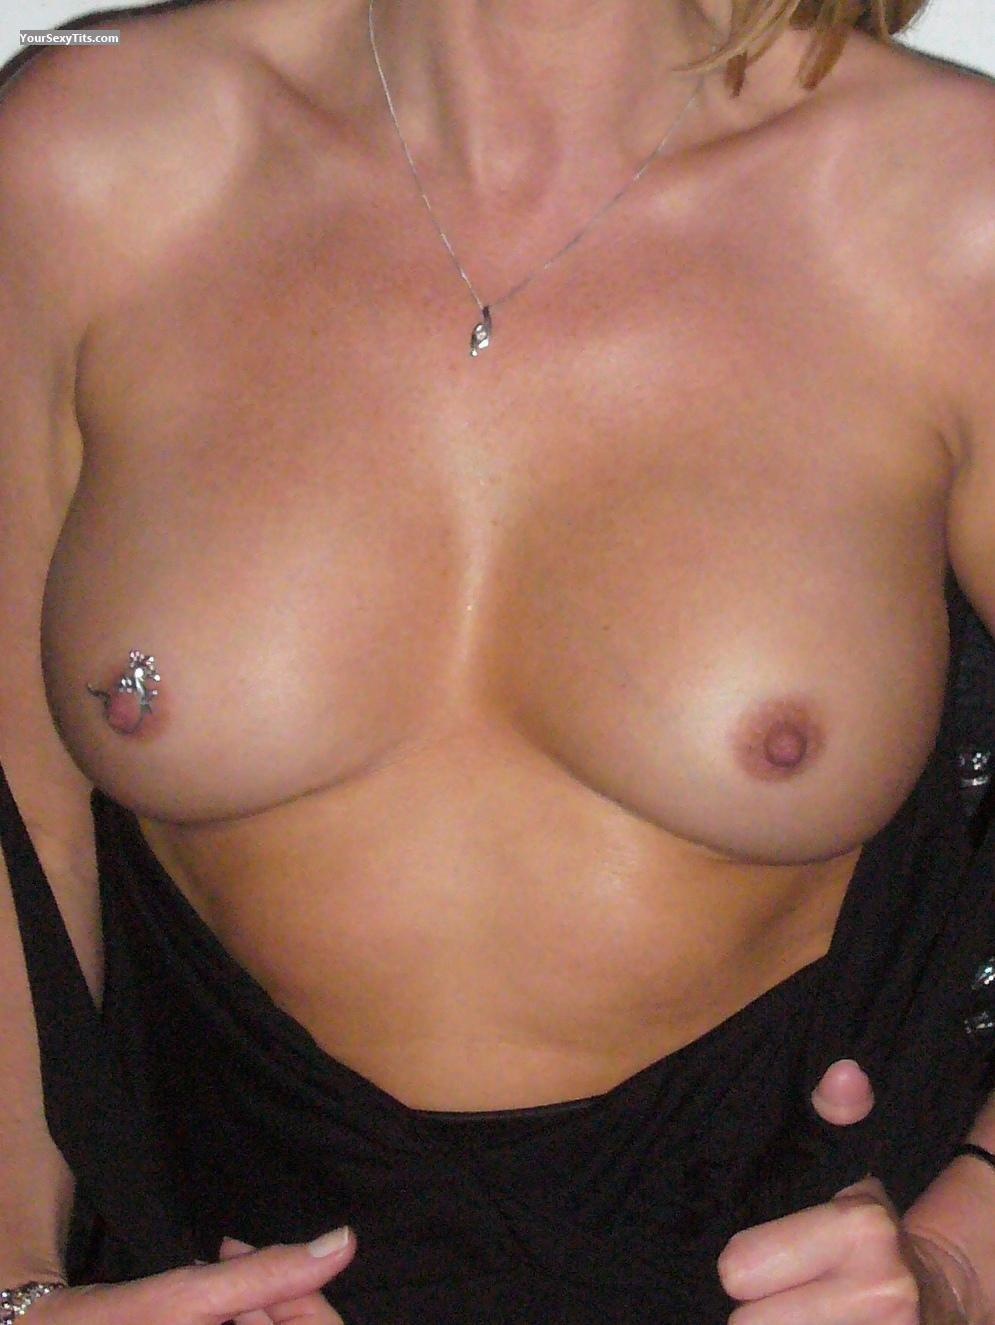 Tit Flash: Medium Tits - Toni from United Kingdom